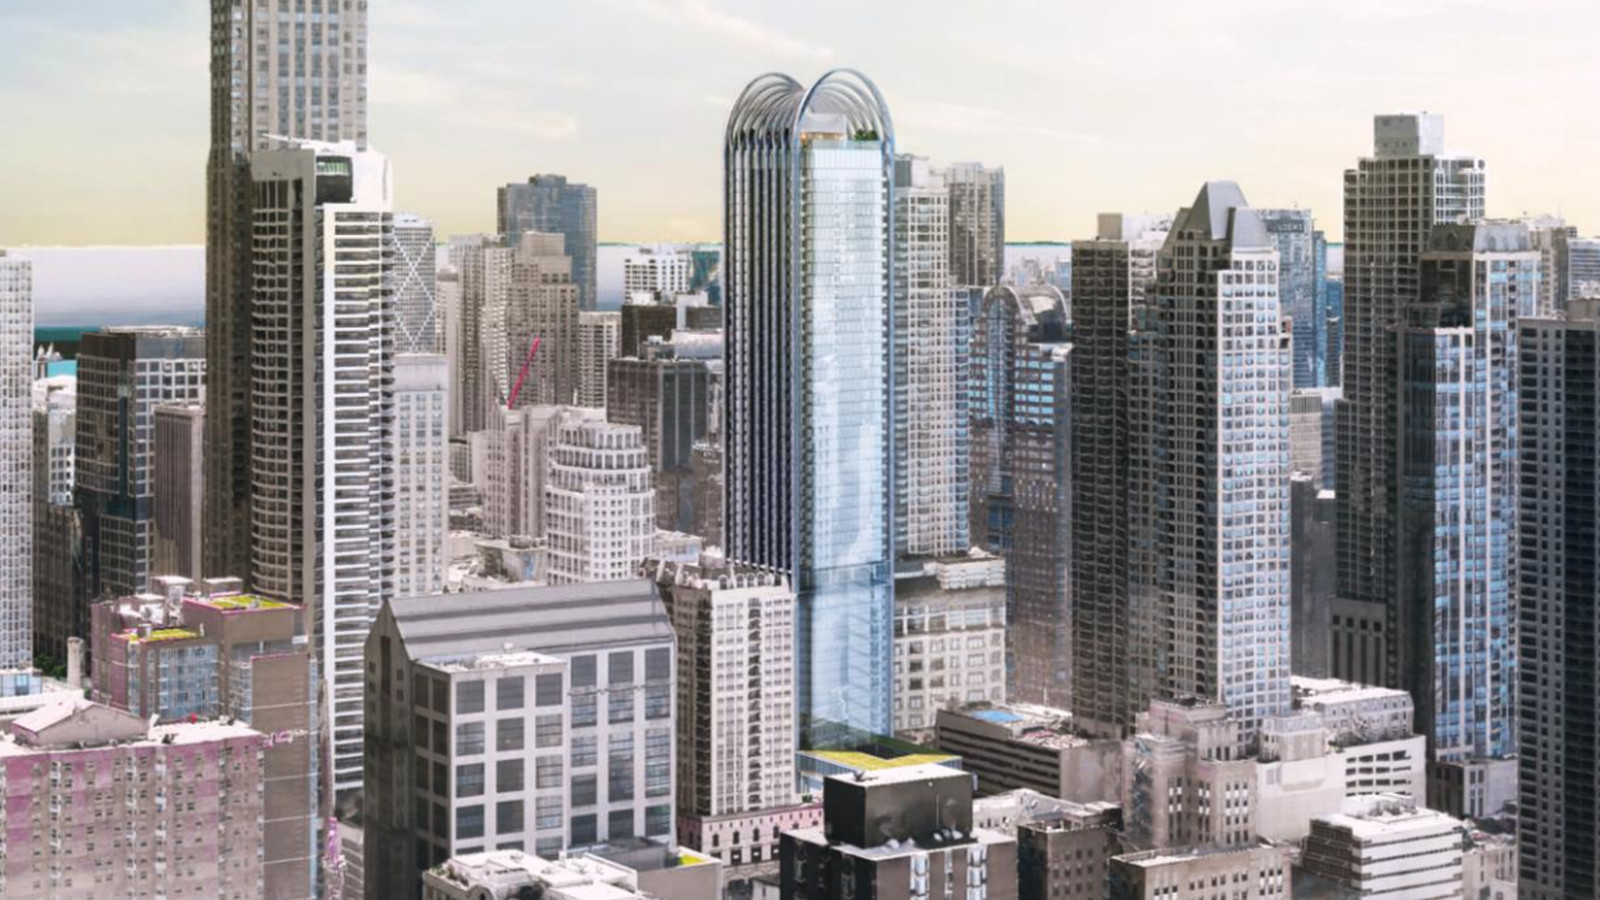 river north s 60 story carillon tower shot down shorter high rise still possible curbed chicago. Black Bedroom Furniture Sets. Home Design Ideas